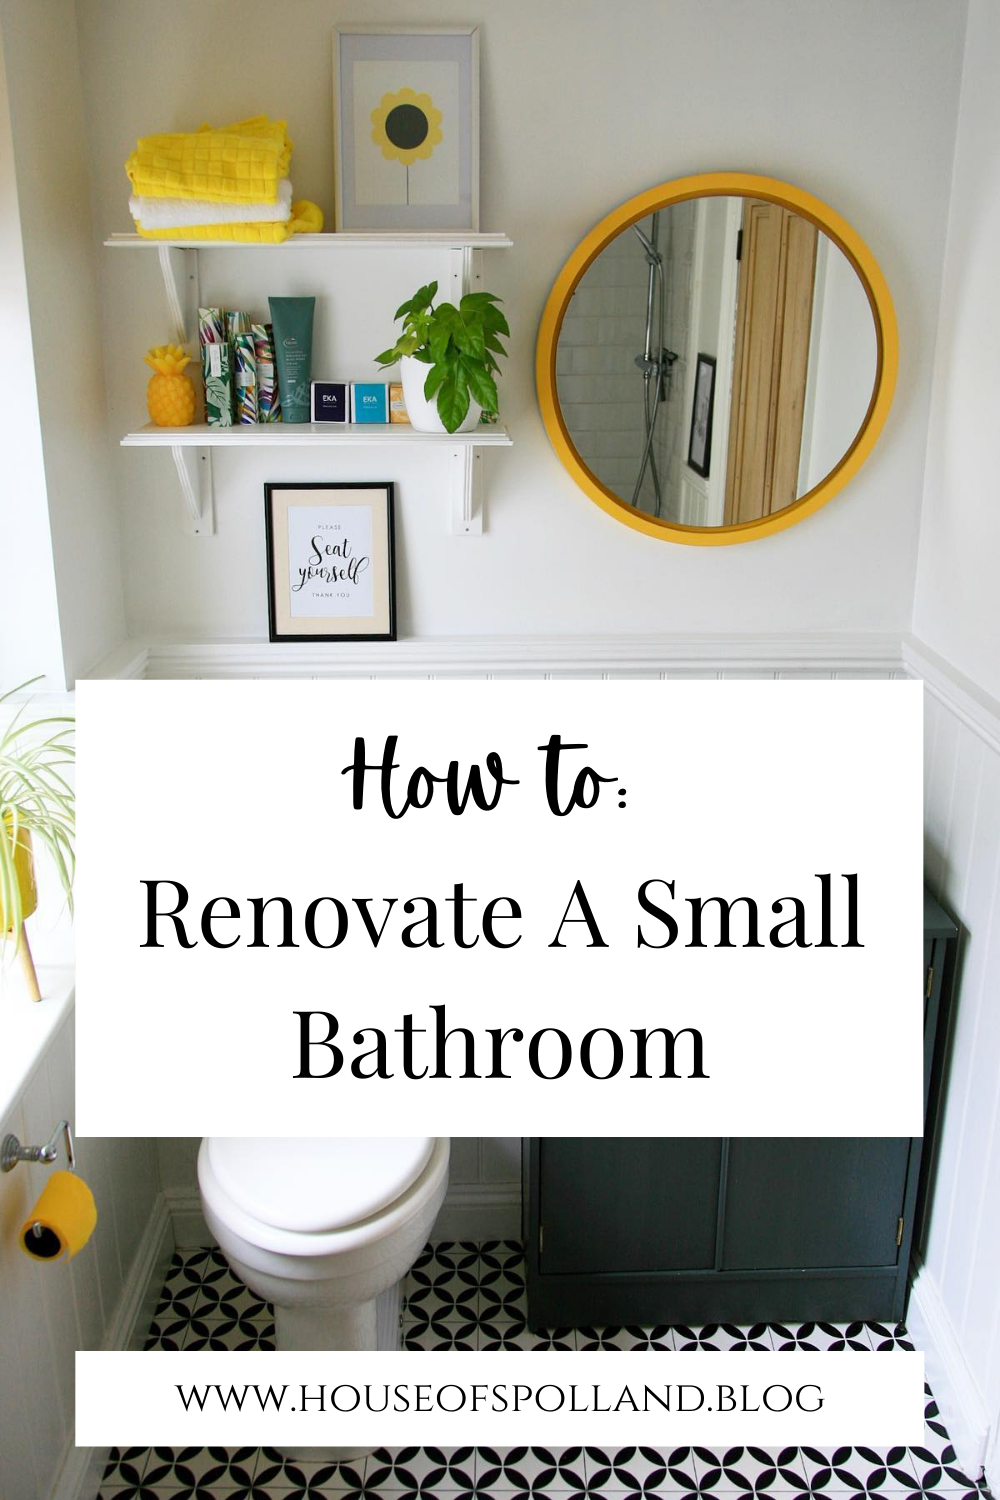 Period properties come with many a challenge when renovating. One of the challenges can be a small bathroom to plan, configure and renovate to a standard that fits with the needs of your family. Here I share our renovation journey, my tips on how you can renovate a small bathroom and some of the tools that helped us to do so.